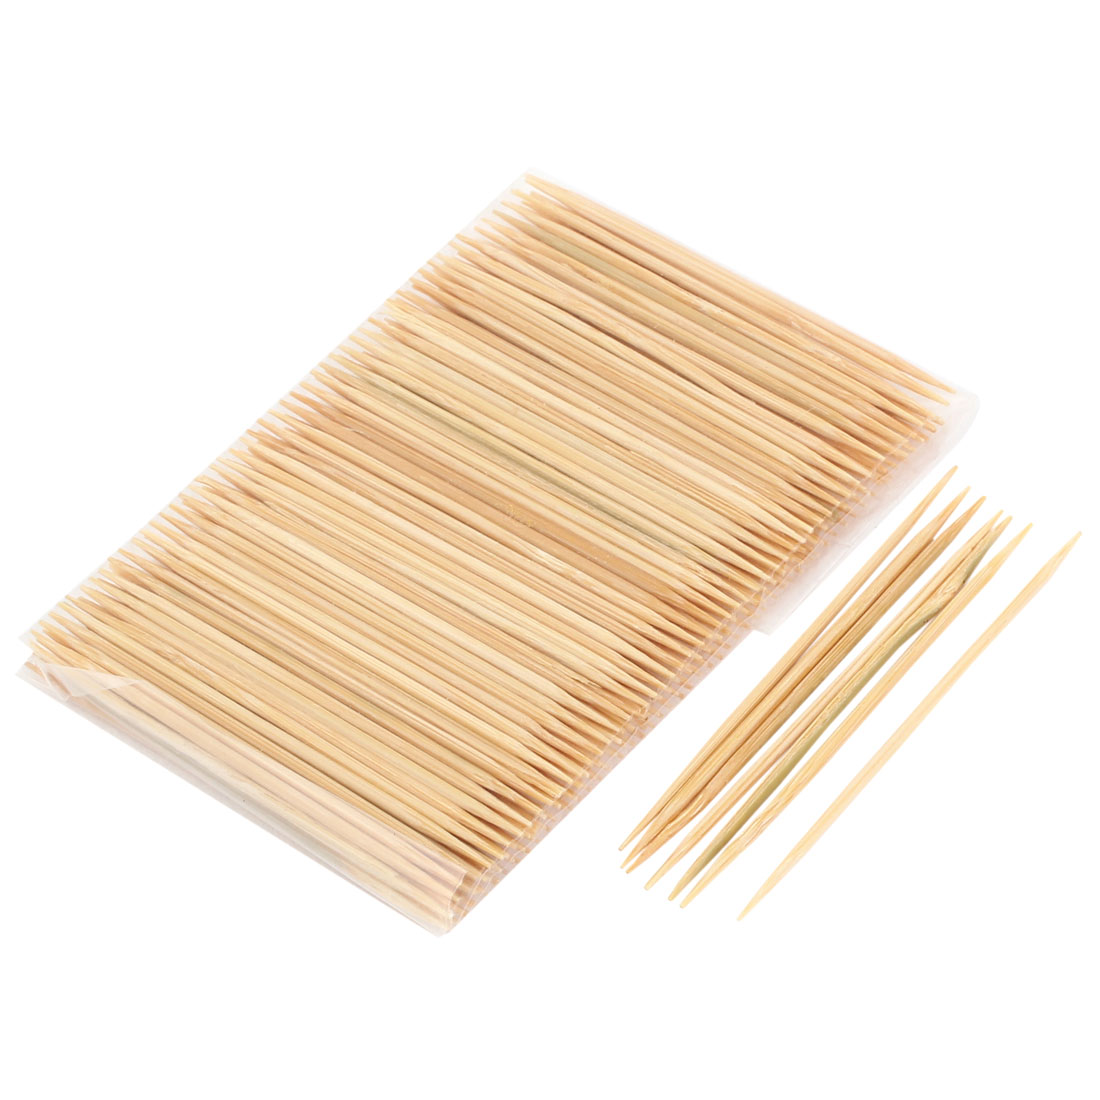 200 Pcs Home Restaurant Double Head Bamboo Toothpicks 6.4cm Long